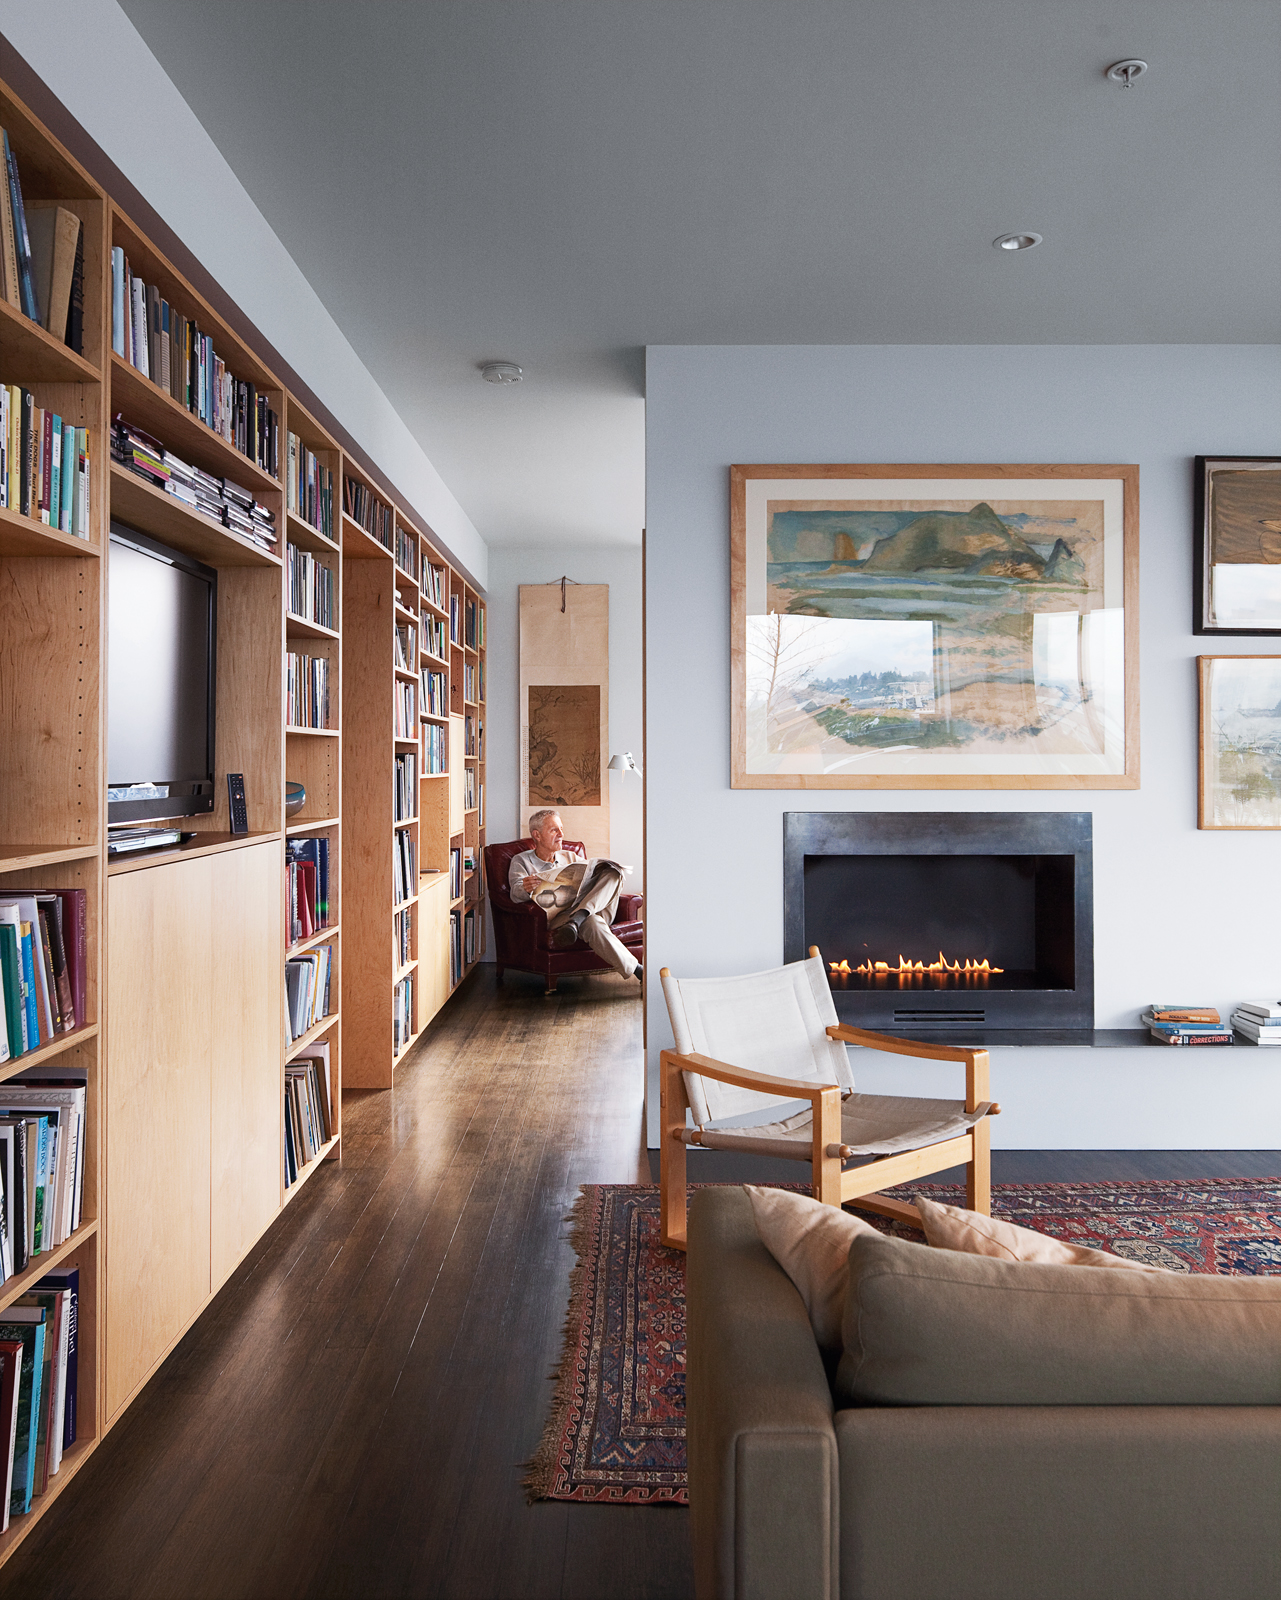 Bayley's ventless fireplace from Spark Modern Fires keeps the house toasty as he reads in his favorite red armchair, a vintage-store find, in his bedroom.